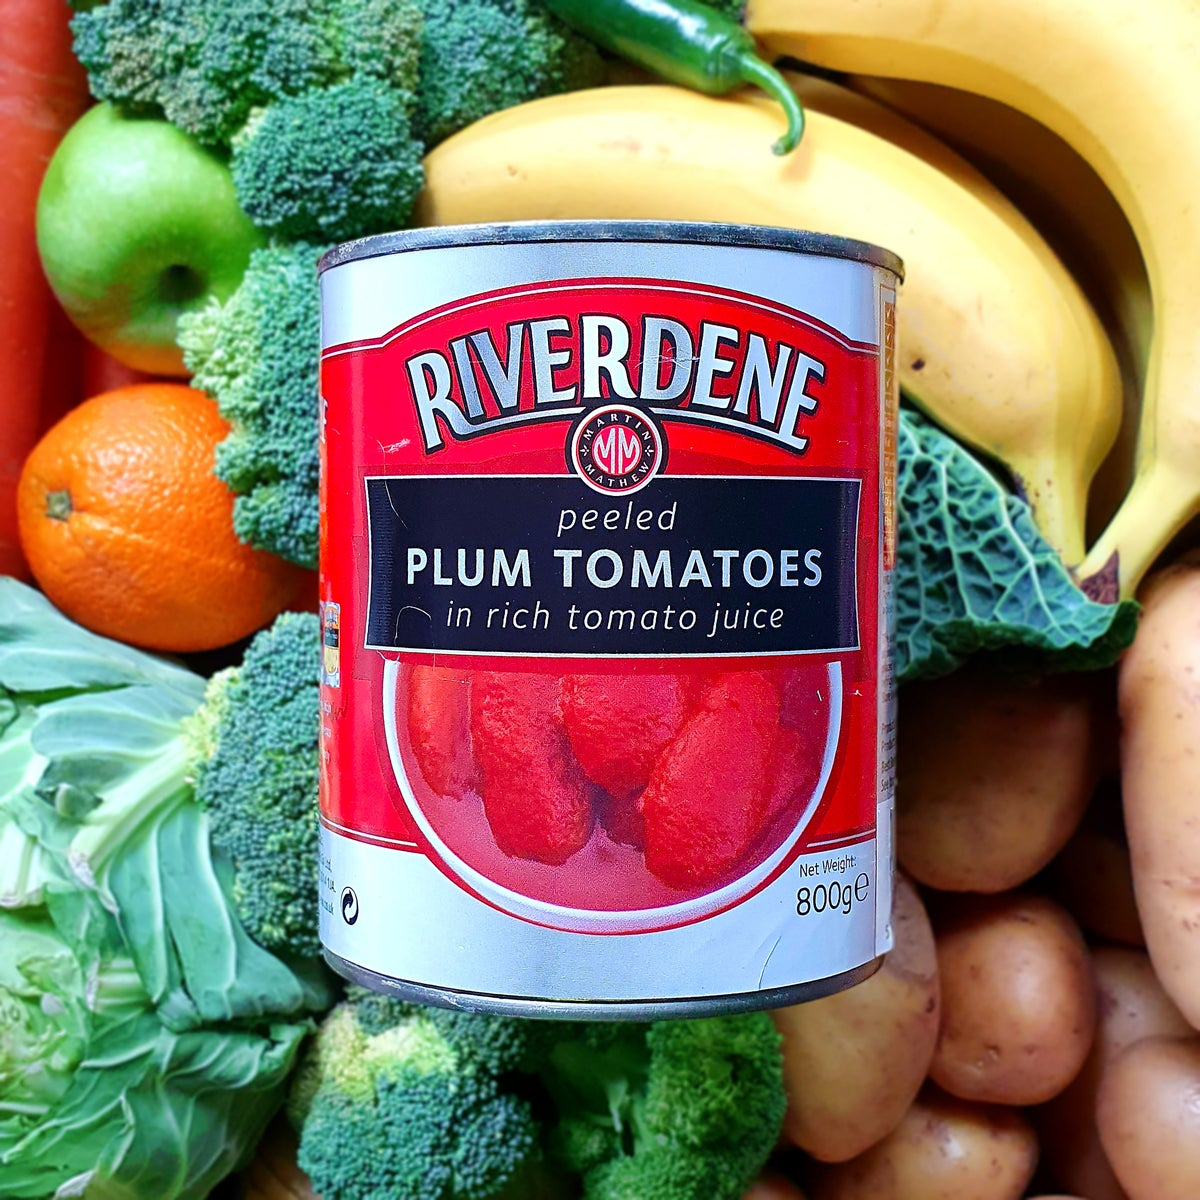 ADD PLUM TOMATOES